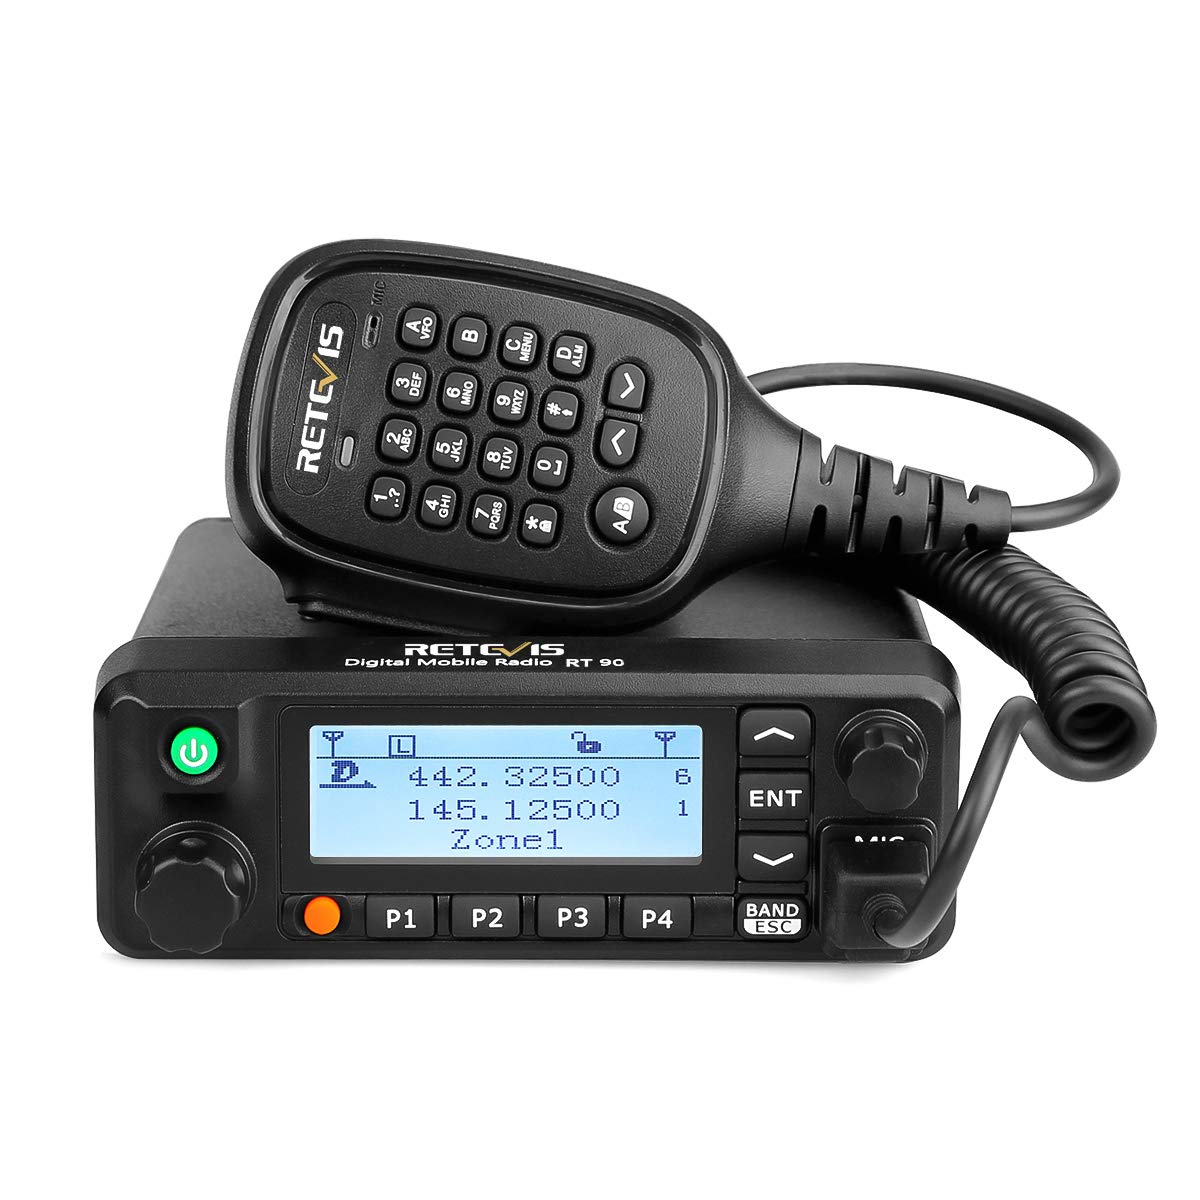 Retevis RT90 Mobile Radios Digital Dual Band 50W VHF UHF 136-174MHz 400-480Mhz 250 Zones 3000 Channel 10000 Contacts DMR Amateur Mobile Radio with Recording and Programming Cable (Black, 1 Pack)